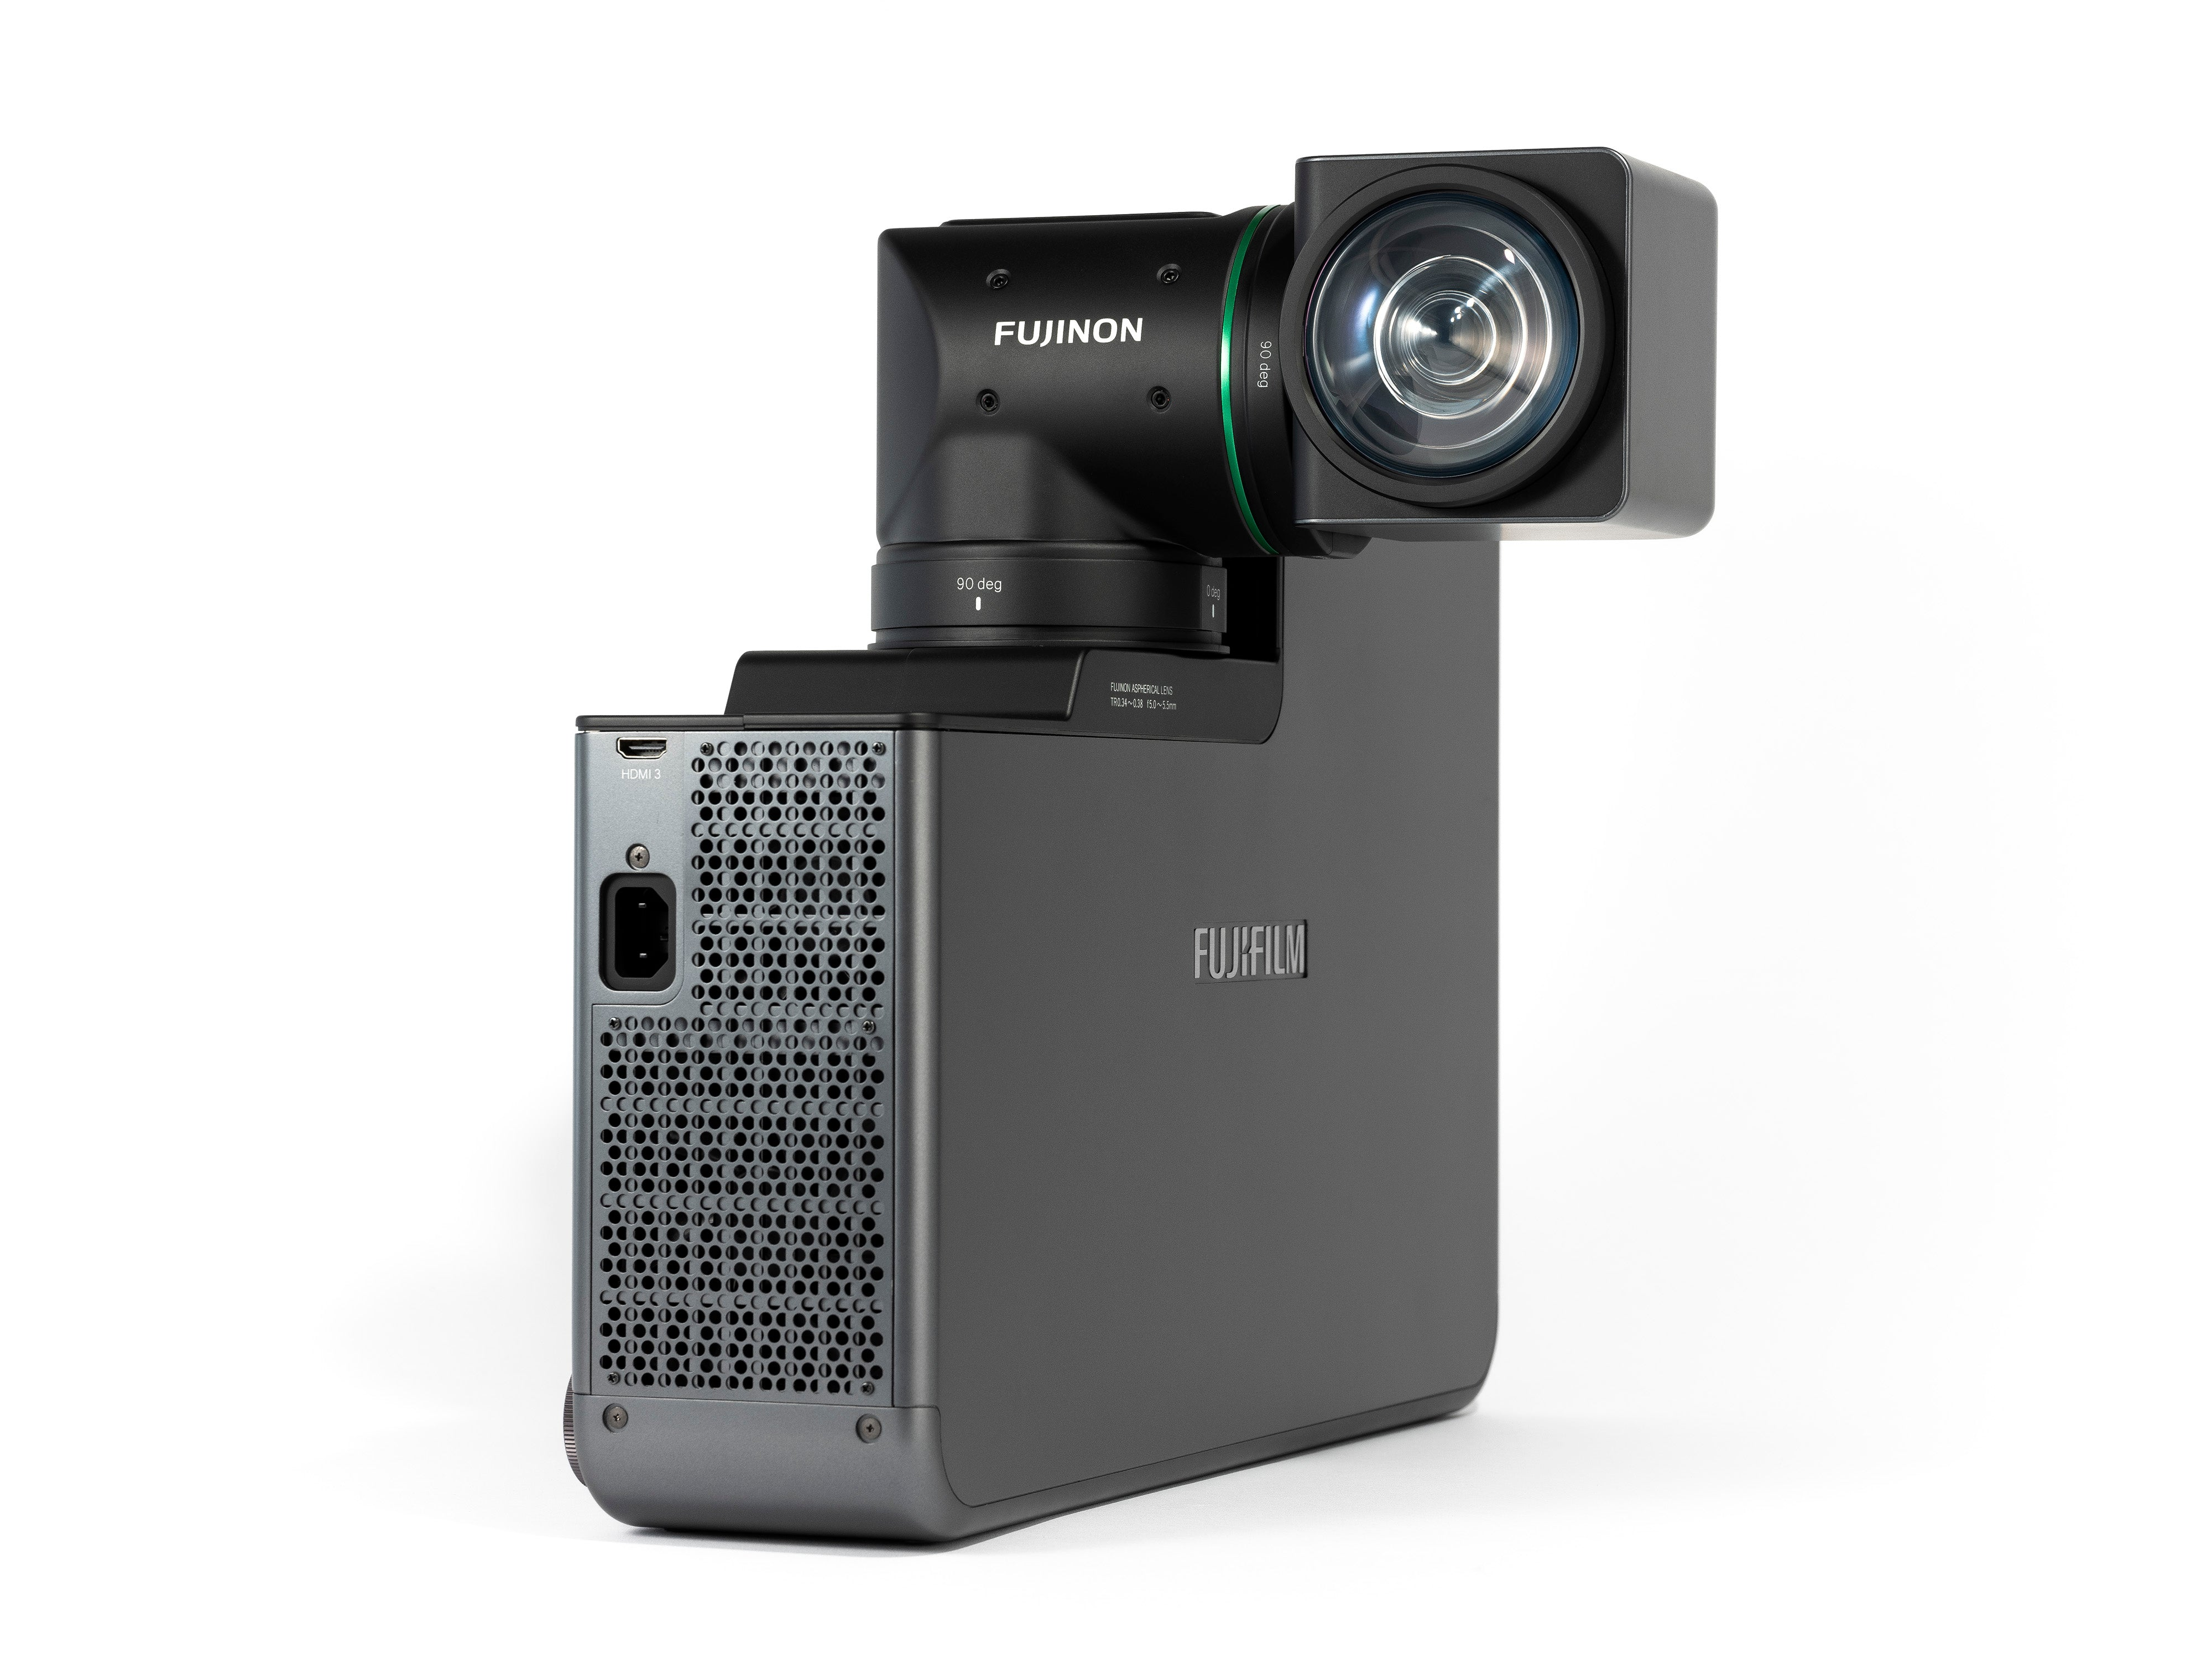 Fuji UST Laser Projector with rotating lens (vertical install)